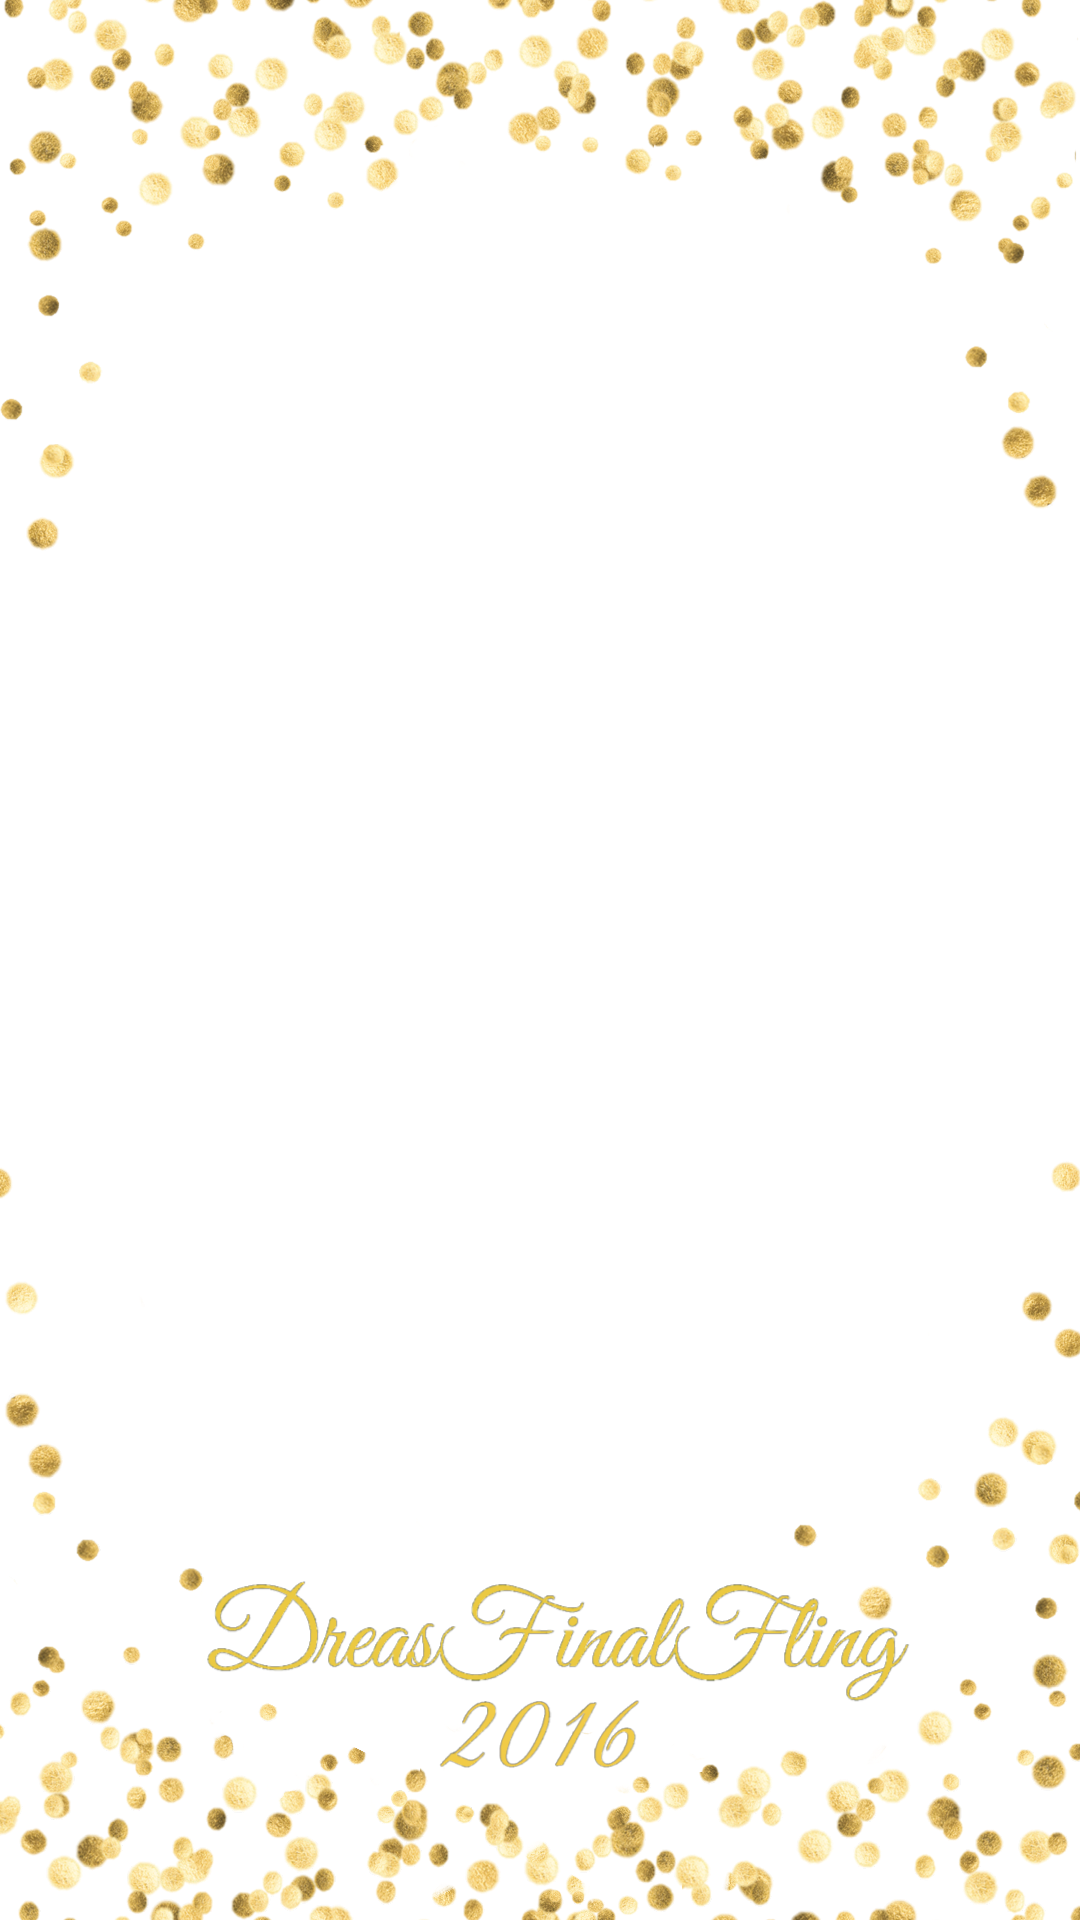 Transparent Background Png Snapchat Filters #37235.